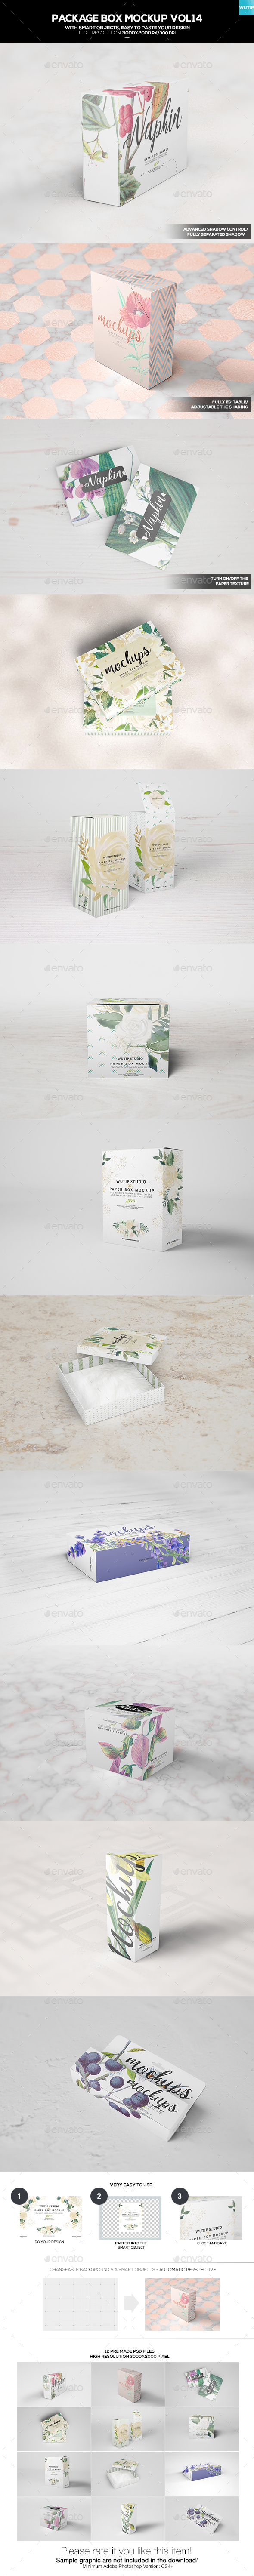 Package Box Mockups 14 - Miscellaneous Packaging